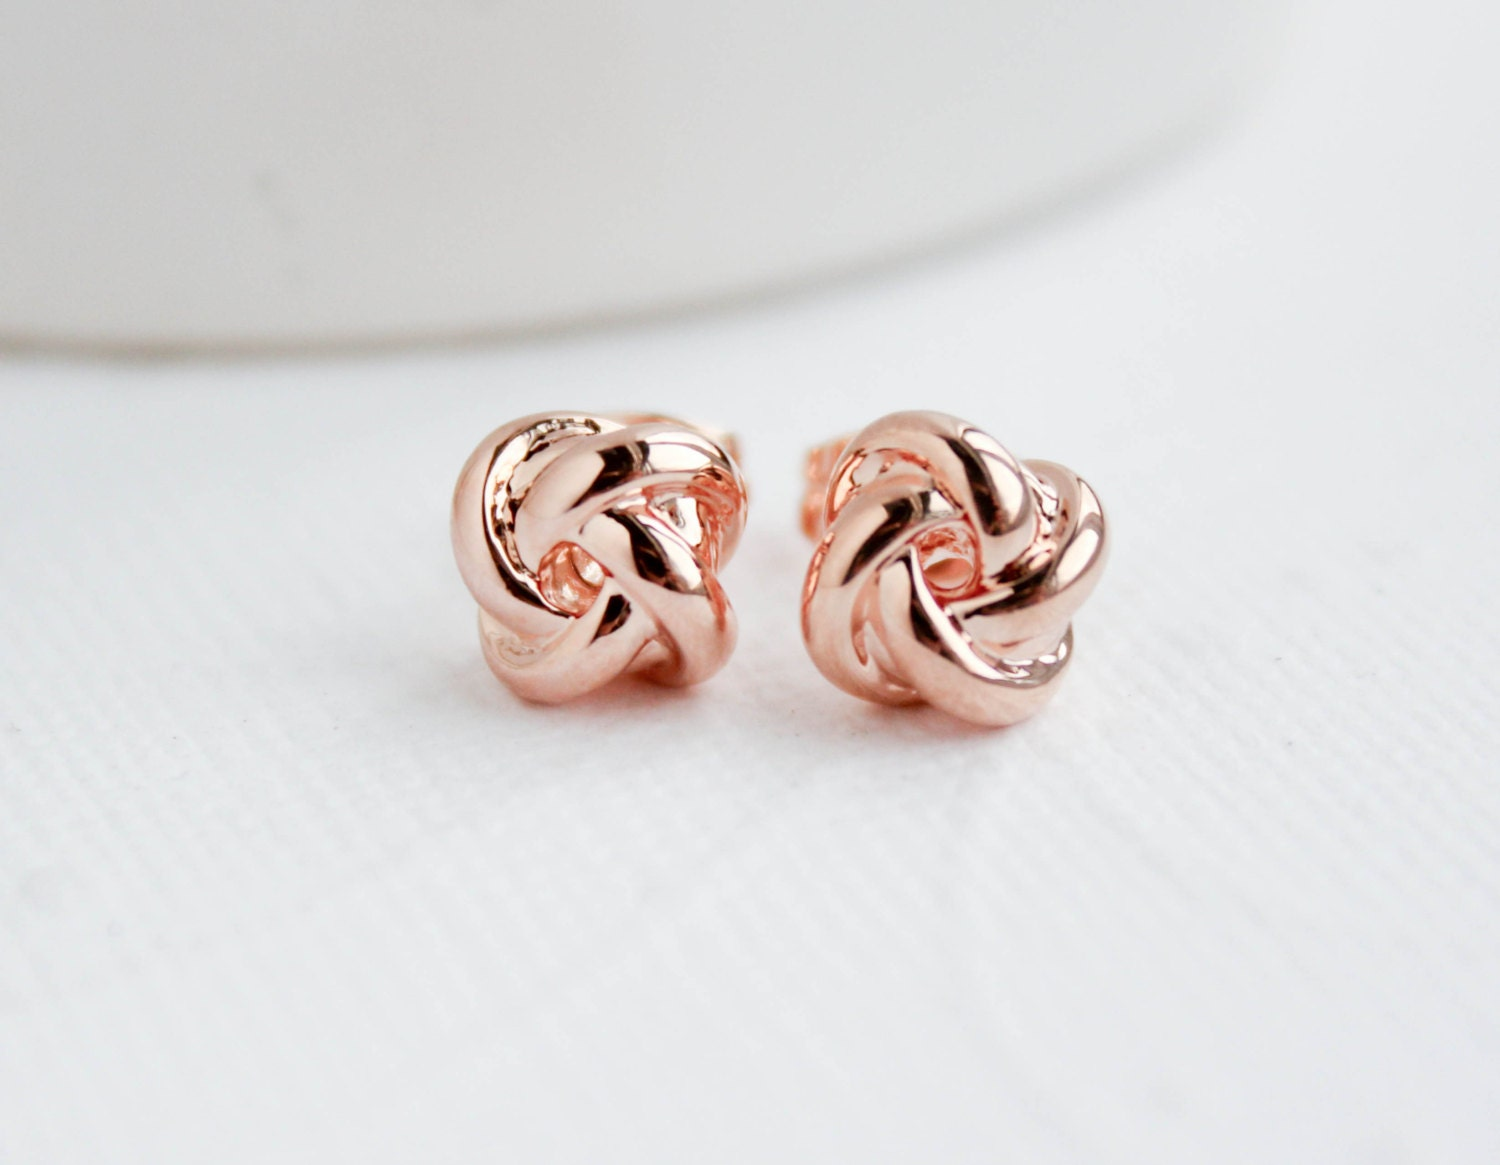 Rose Gold Knot Earrings Knot Earrings Rose Gold Studs